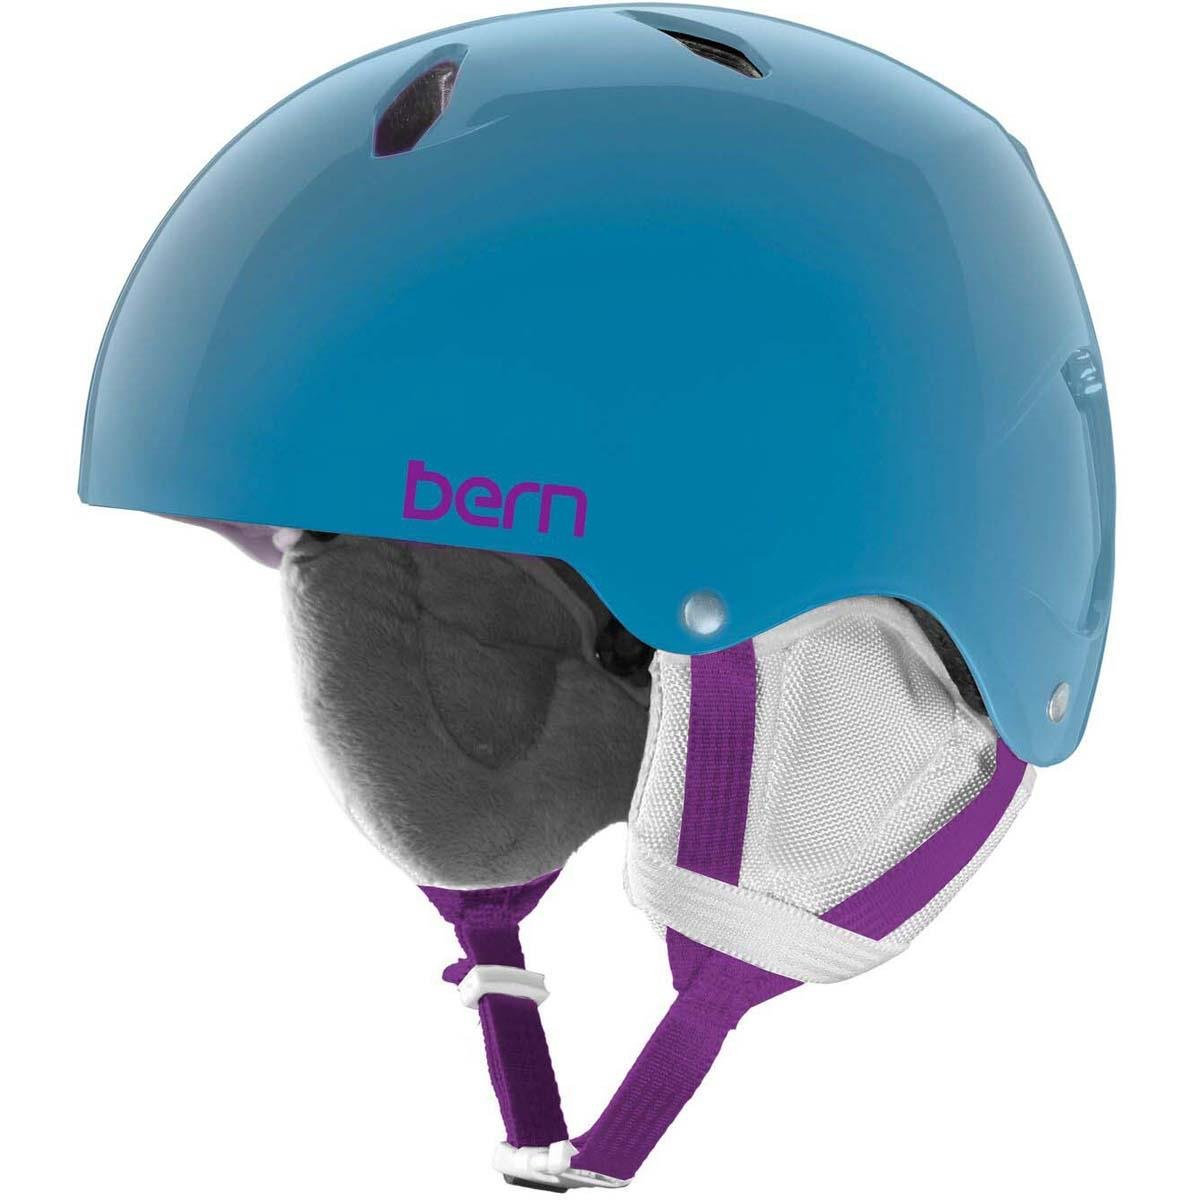 Bern Girls Diabla Helmet (Translucent Blue/Medium)